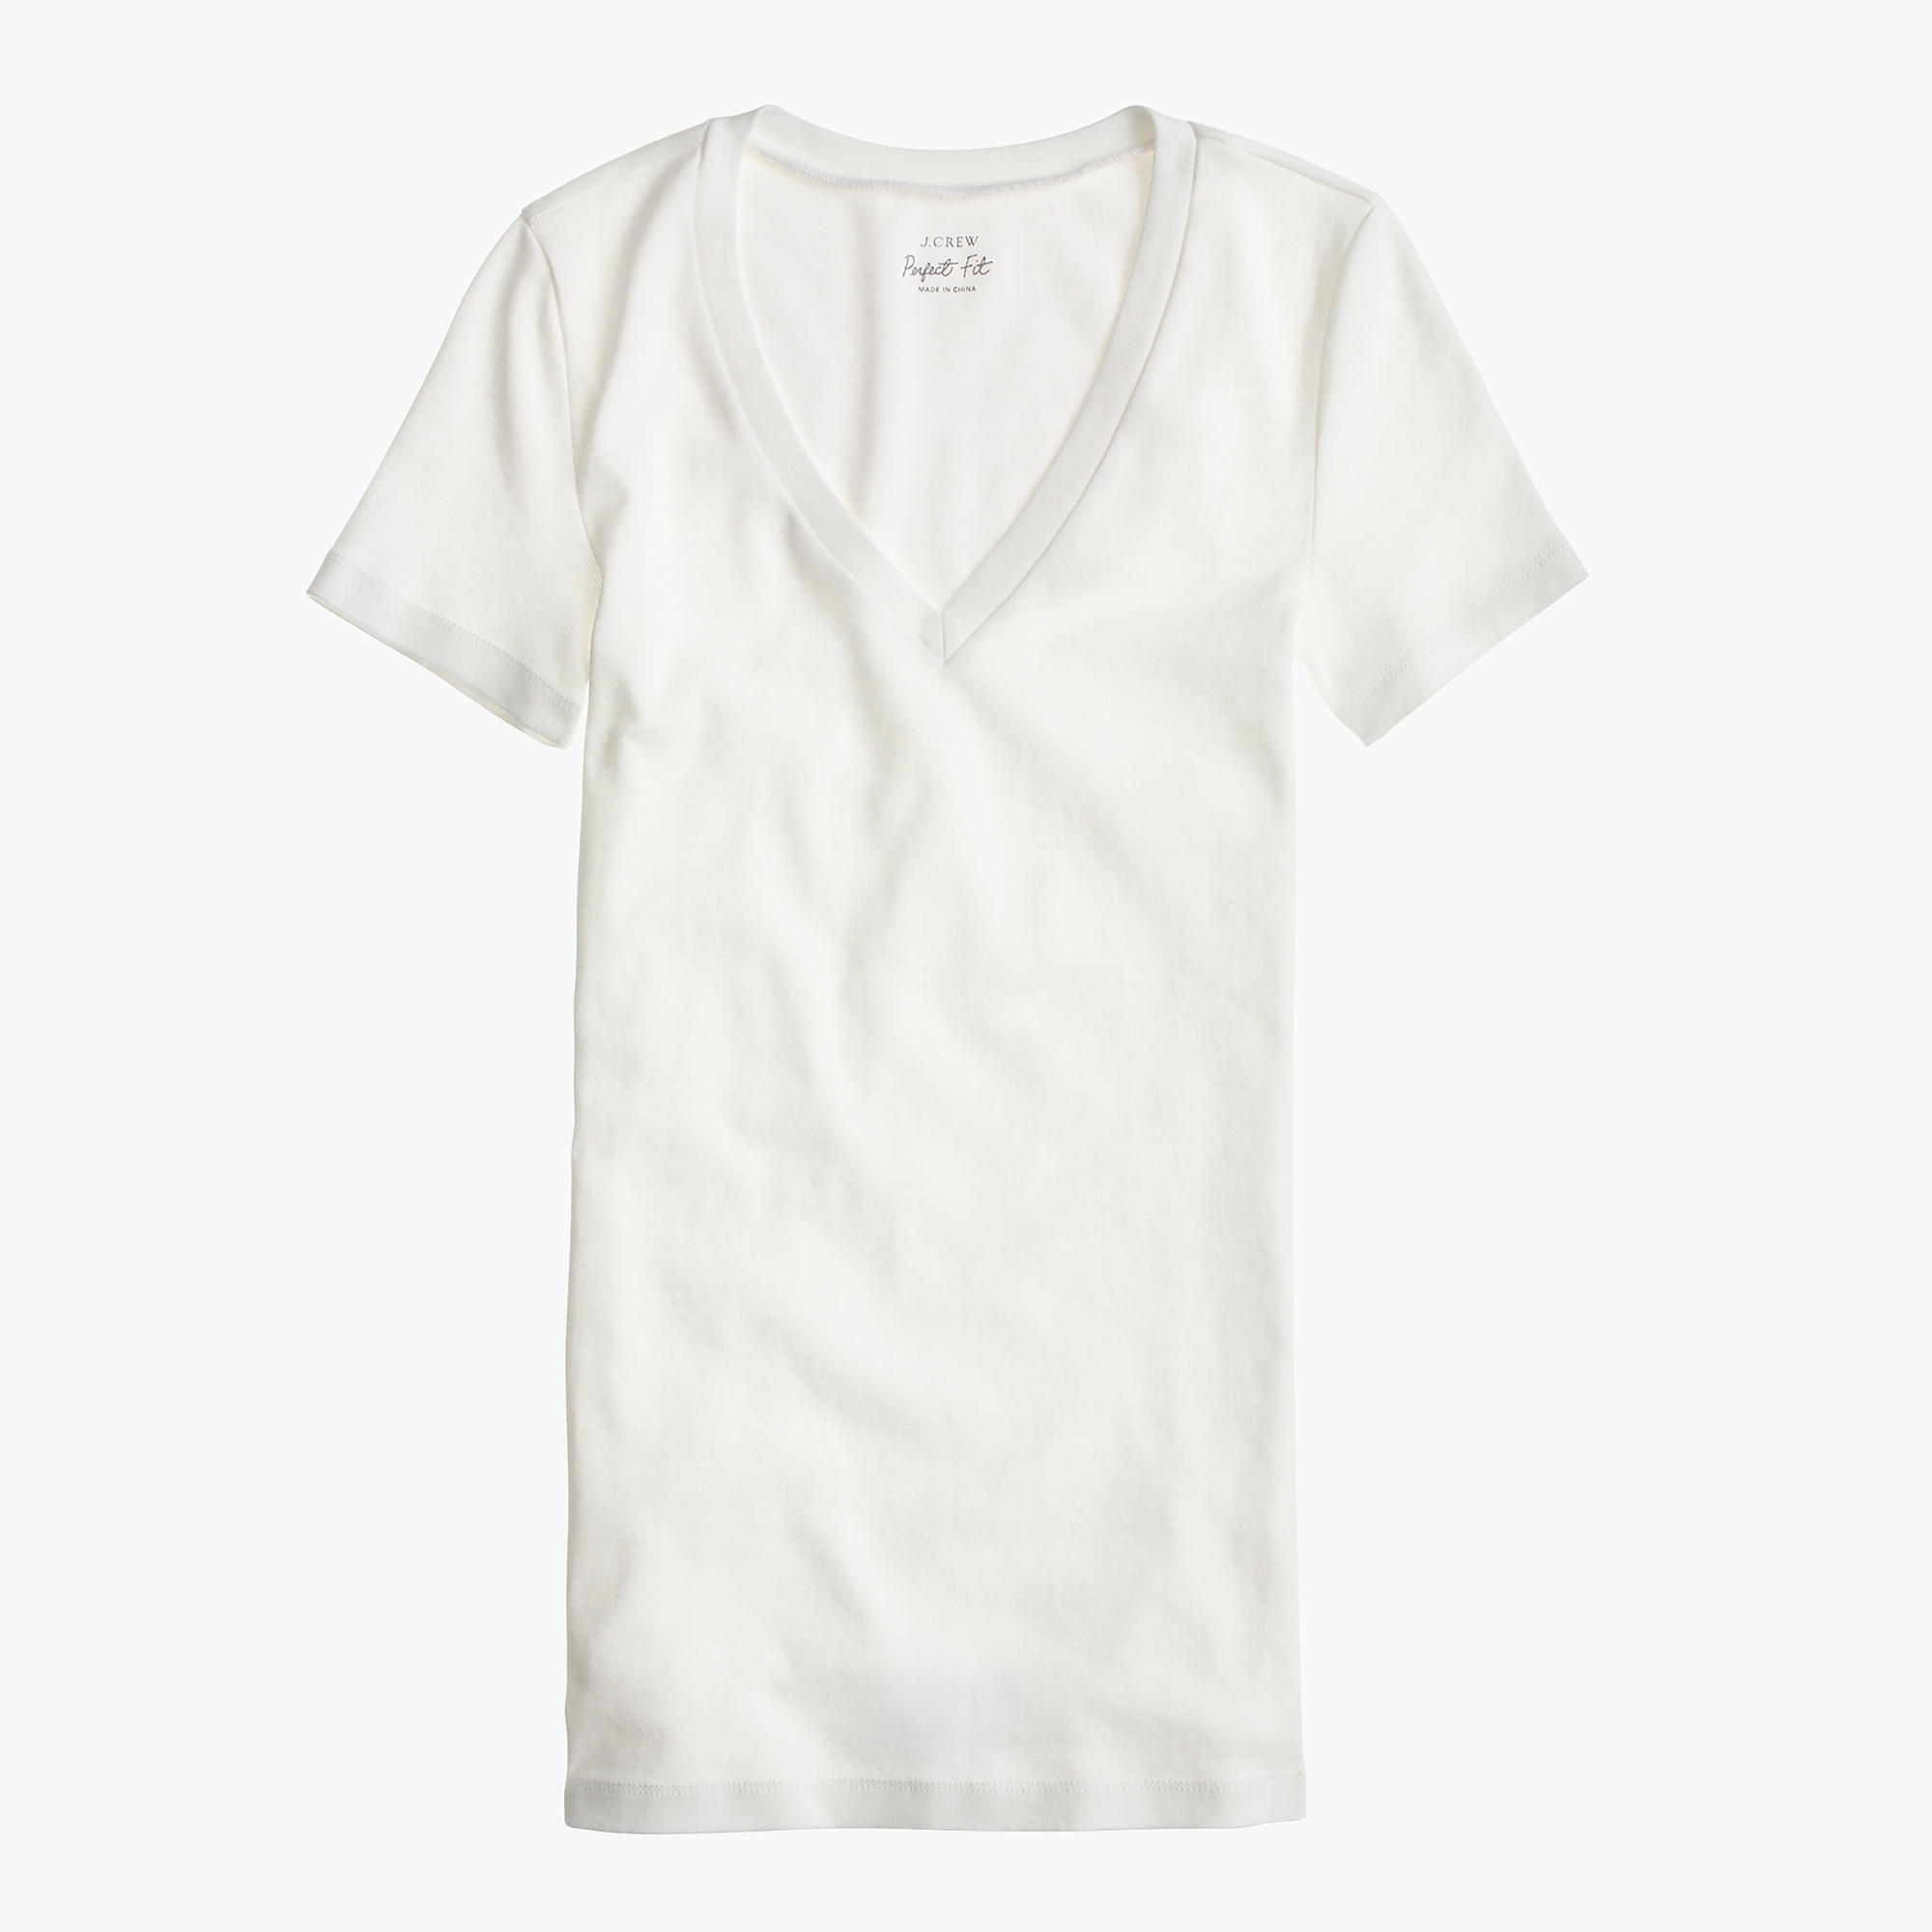 T shirt white black -  Perfect Fit V Neck T Shirt